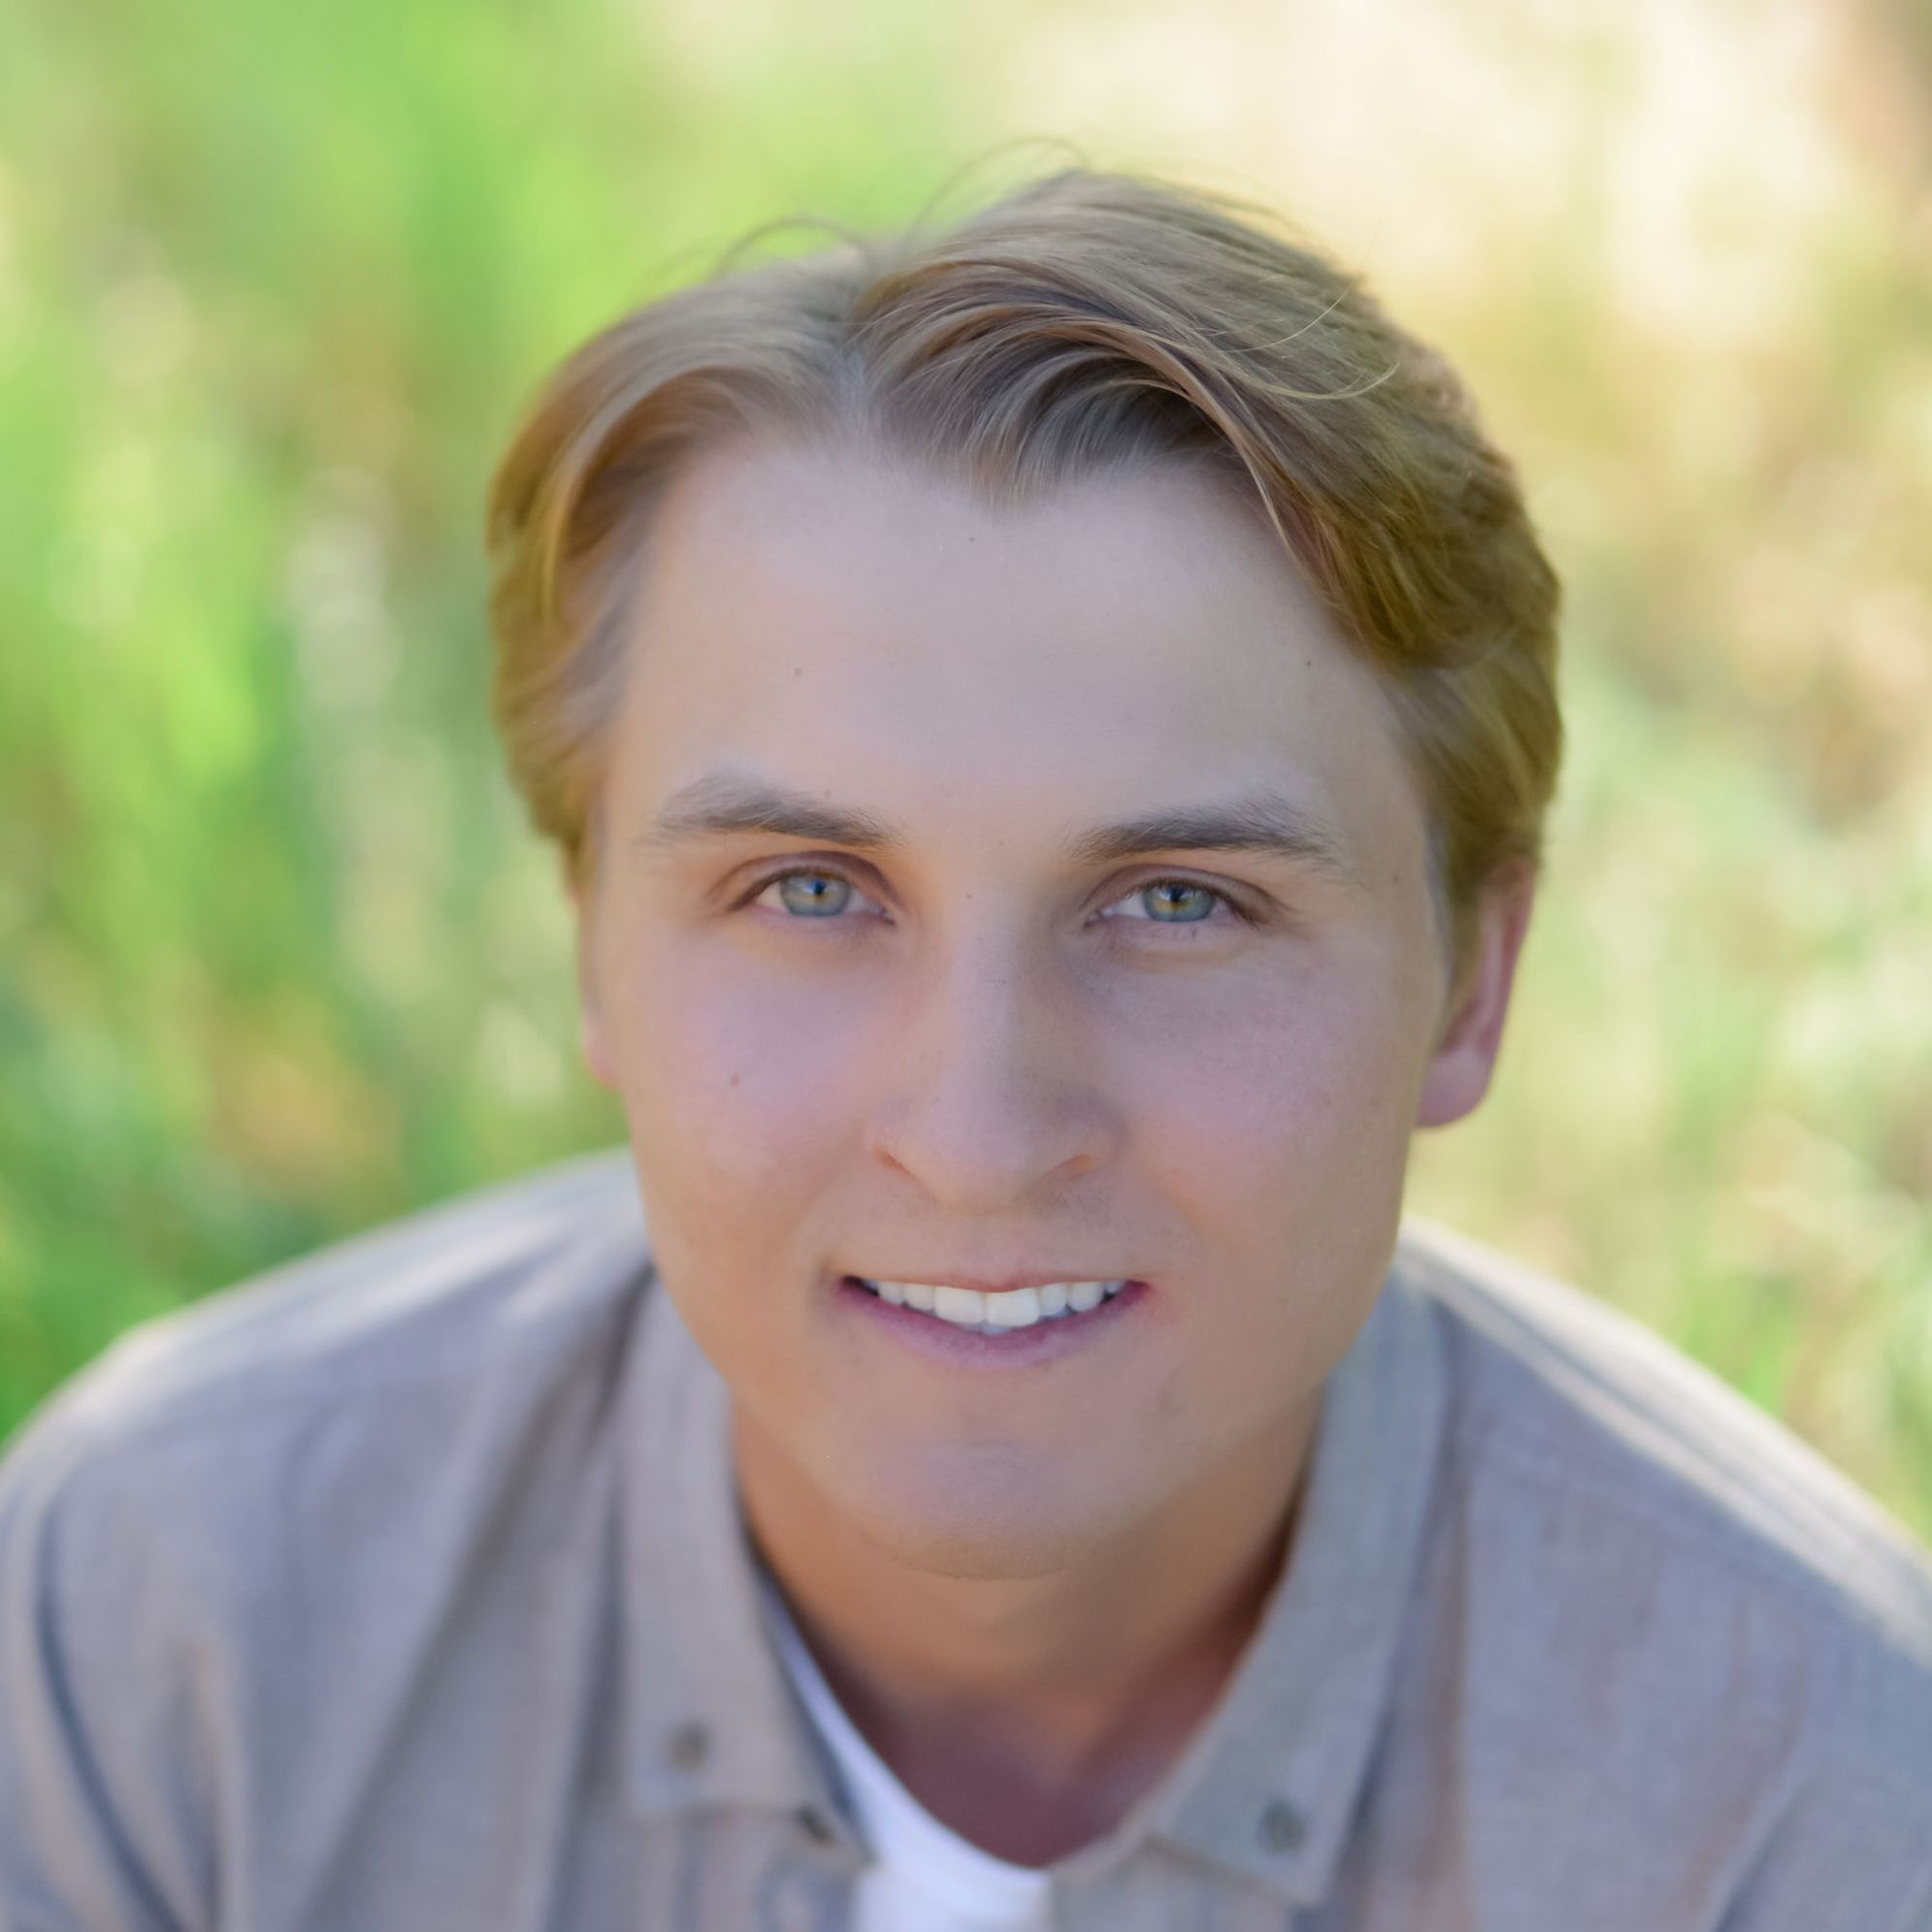 Tyler Halverson from Brigham Young University